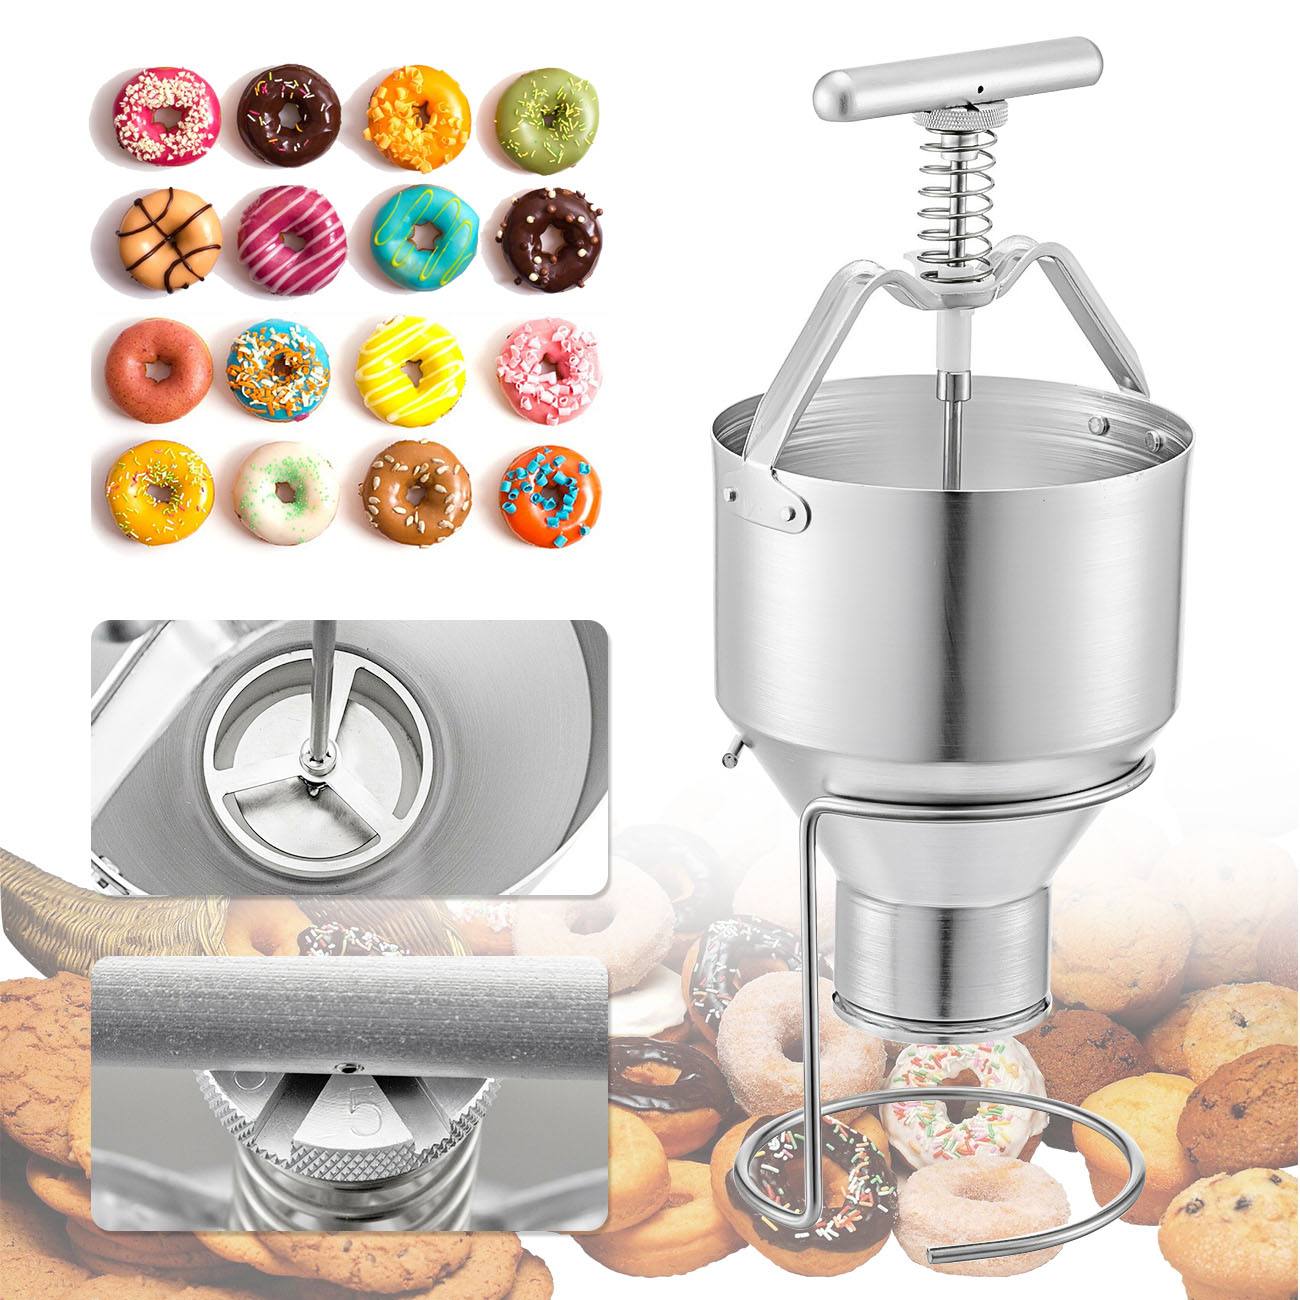 Manual Donut Depositor Dropper Plunger Dough Batter Dispenser Hopper Maker UK